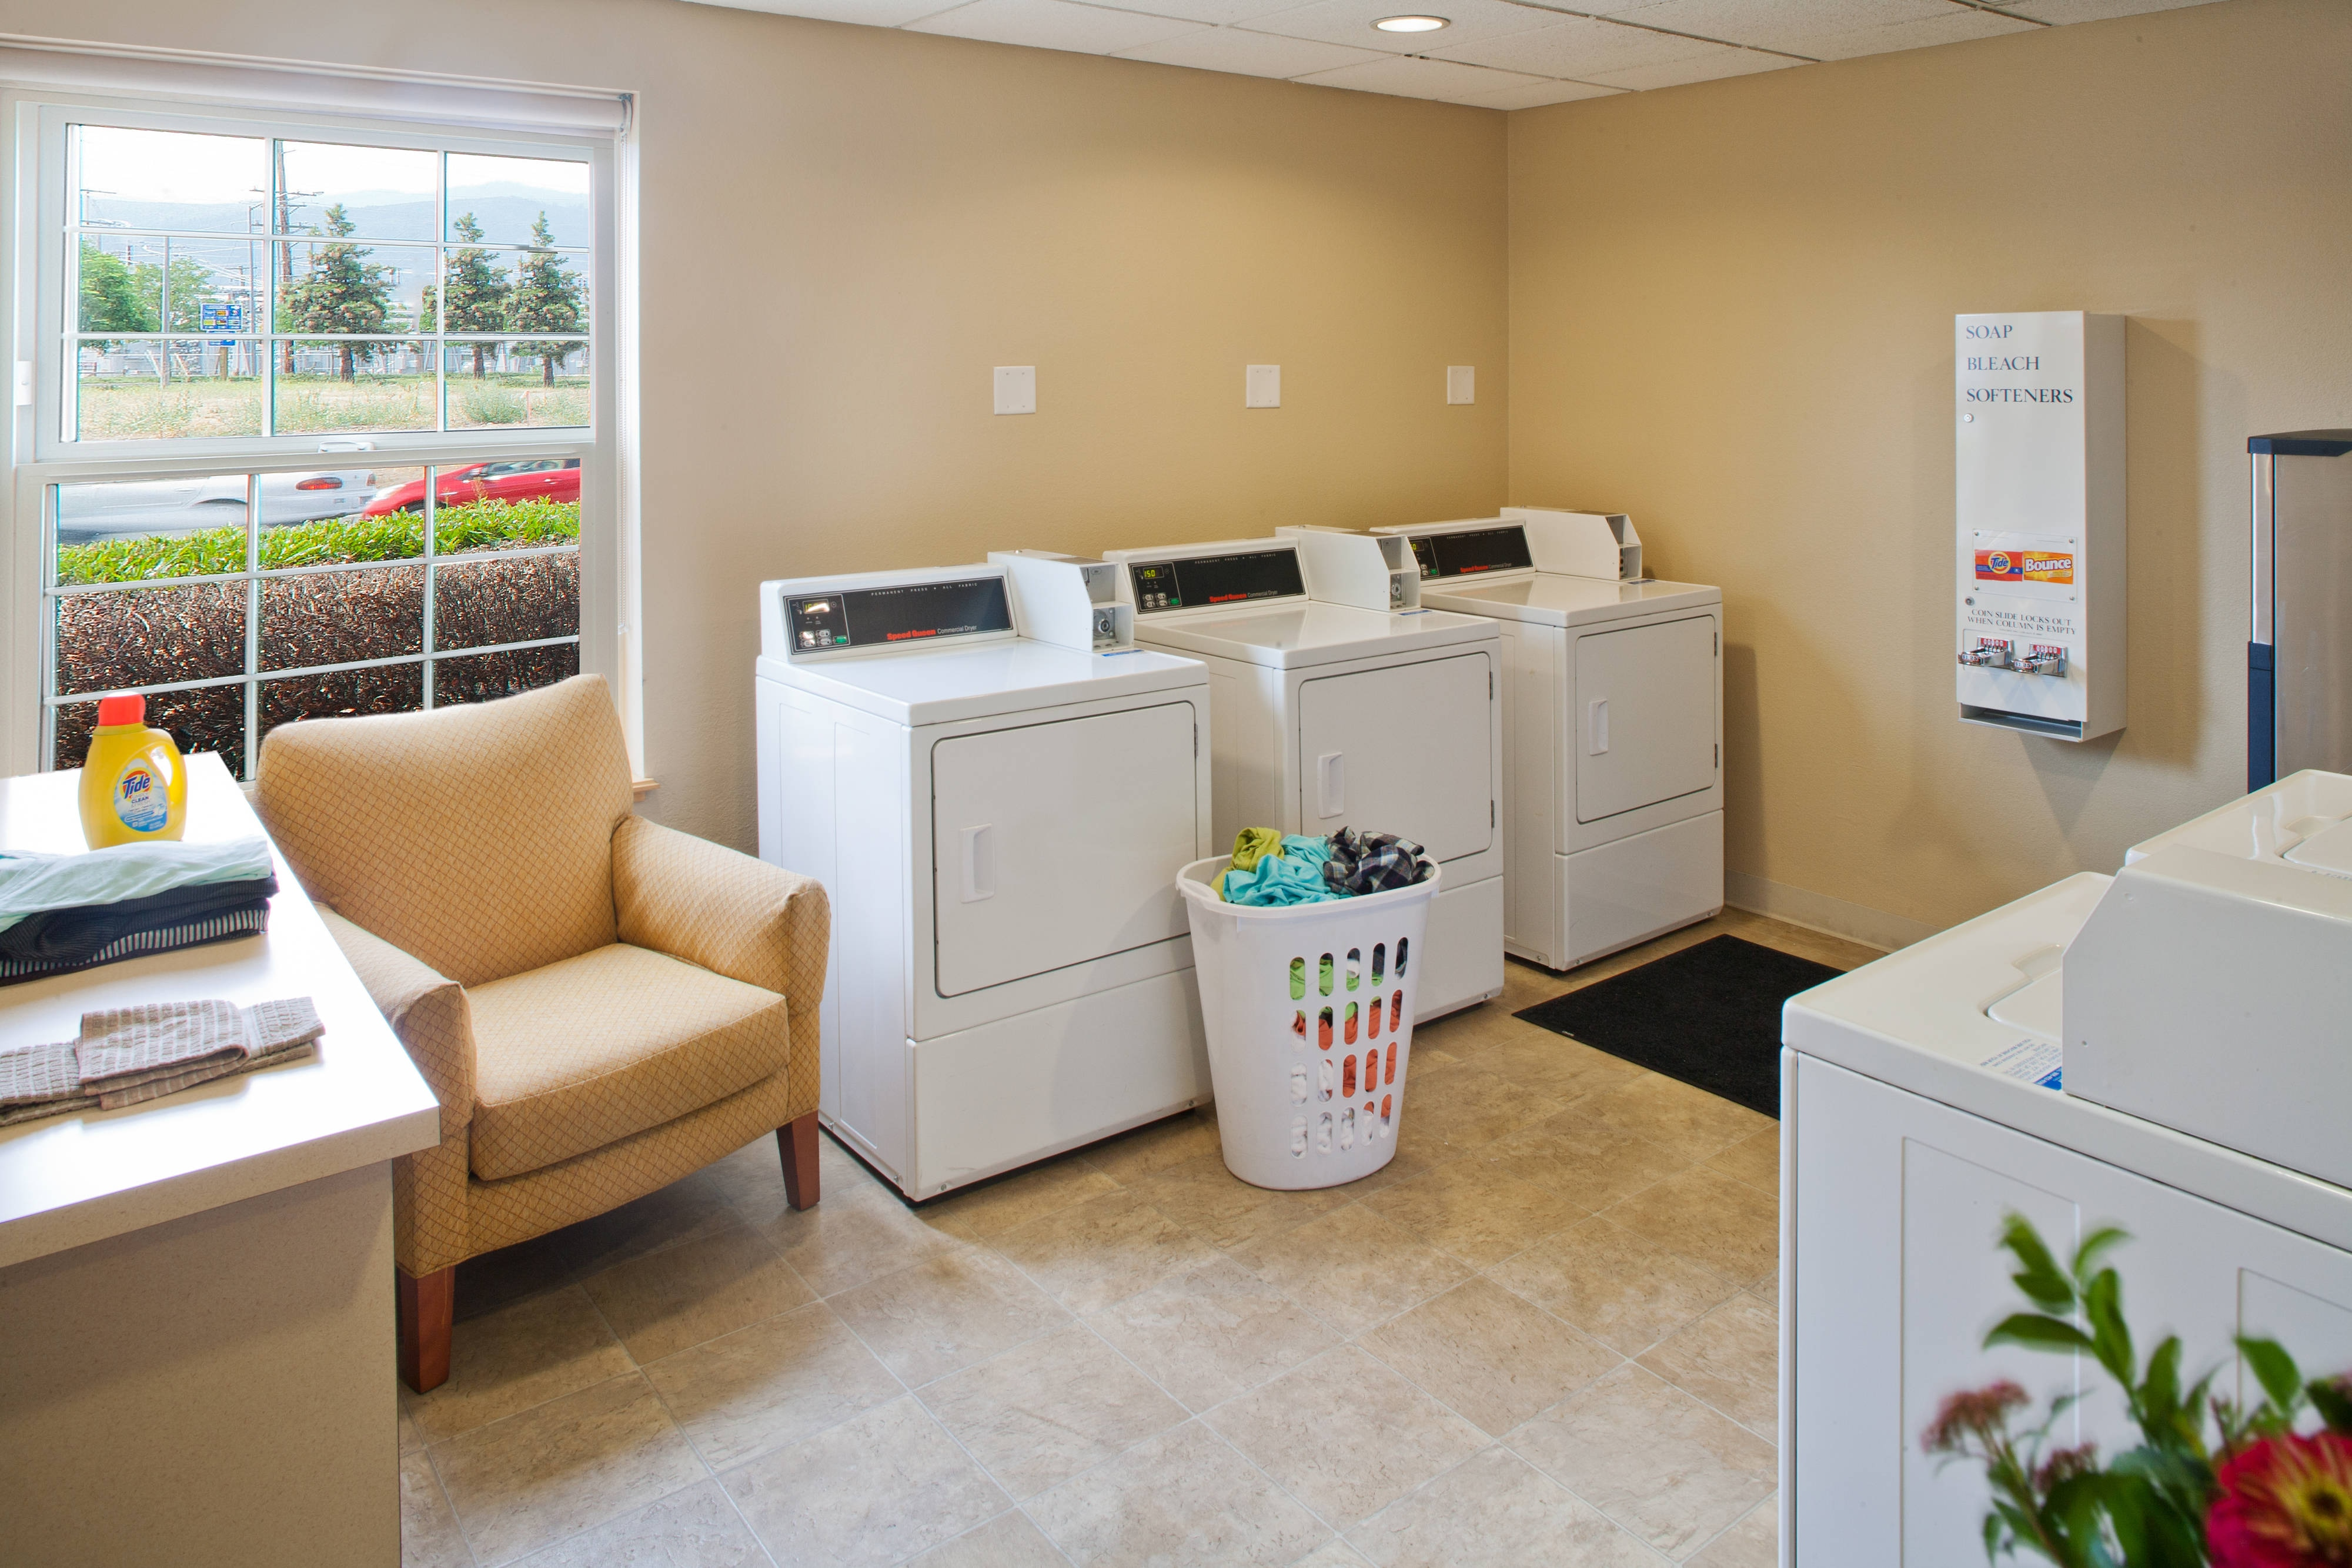 medford hotels with laundry service